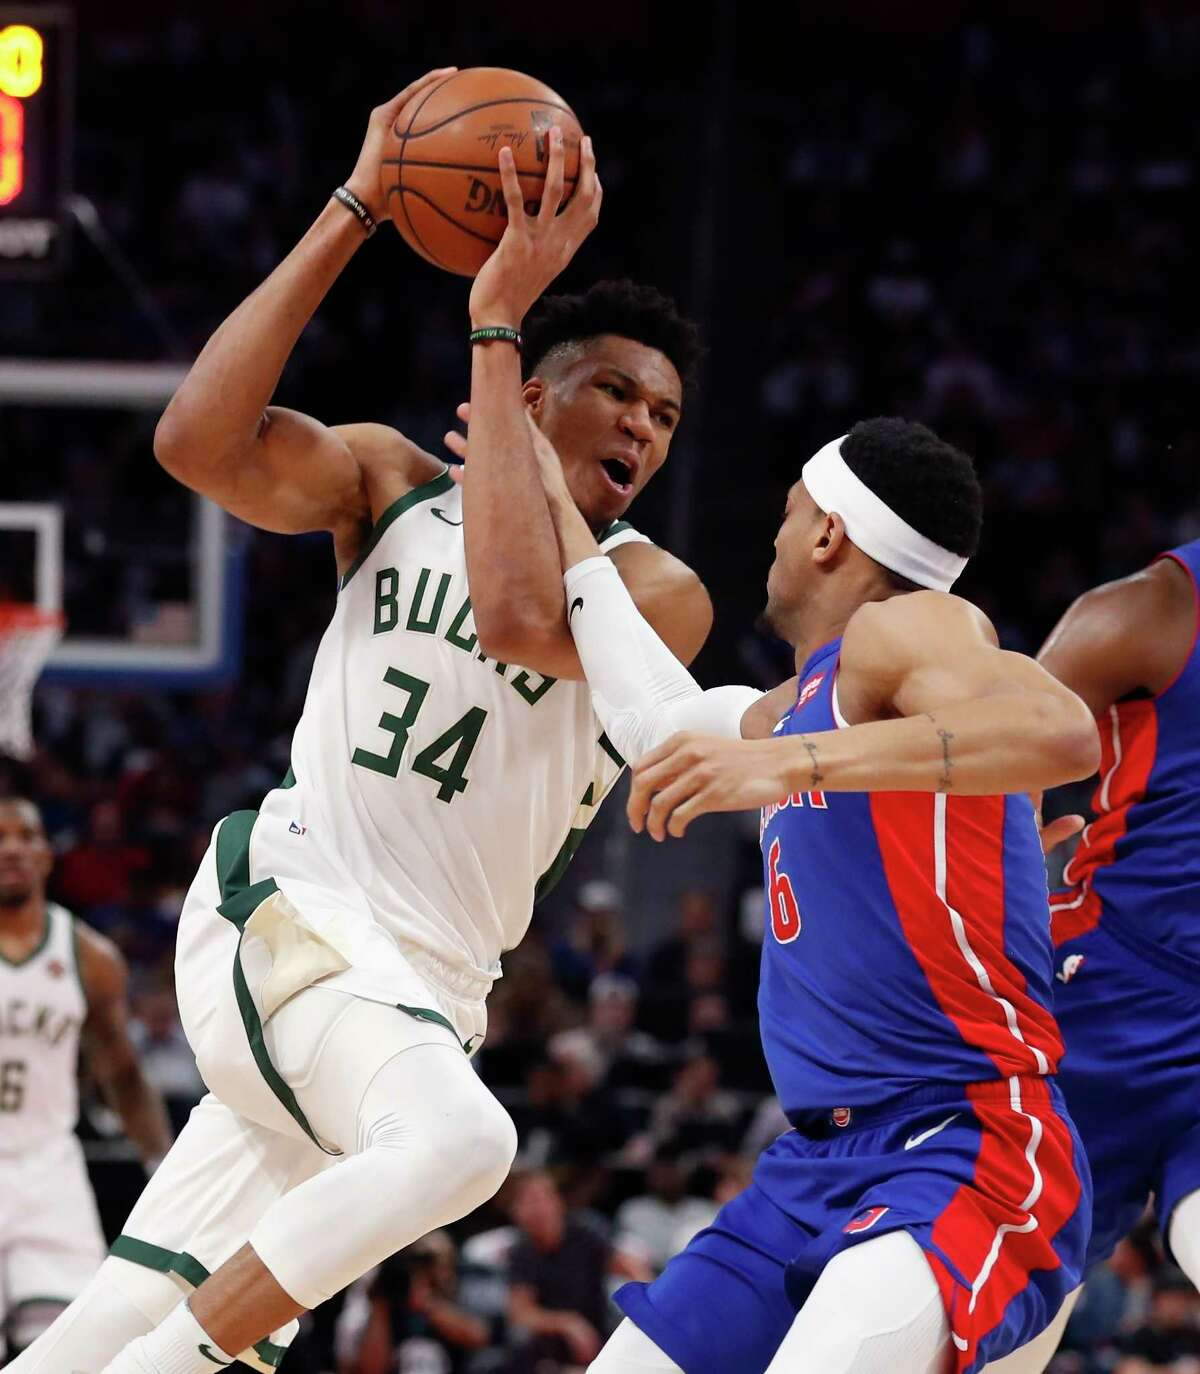 Milwaukee Bucks forward Giannis Antetokounmpo (34) is fouled by Detroit Pistons guard Bruce Brown (6) during the first half of Game 4 of a first-round NBA basketball playoff series, Monday, April 22, 2019, in Detroit. (AP Photo/Carlos Osorio)